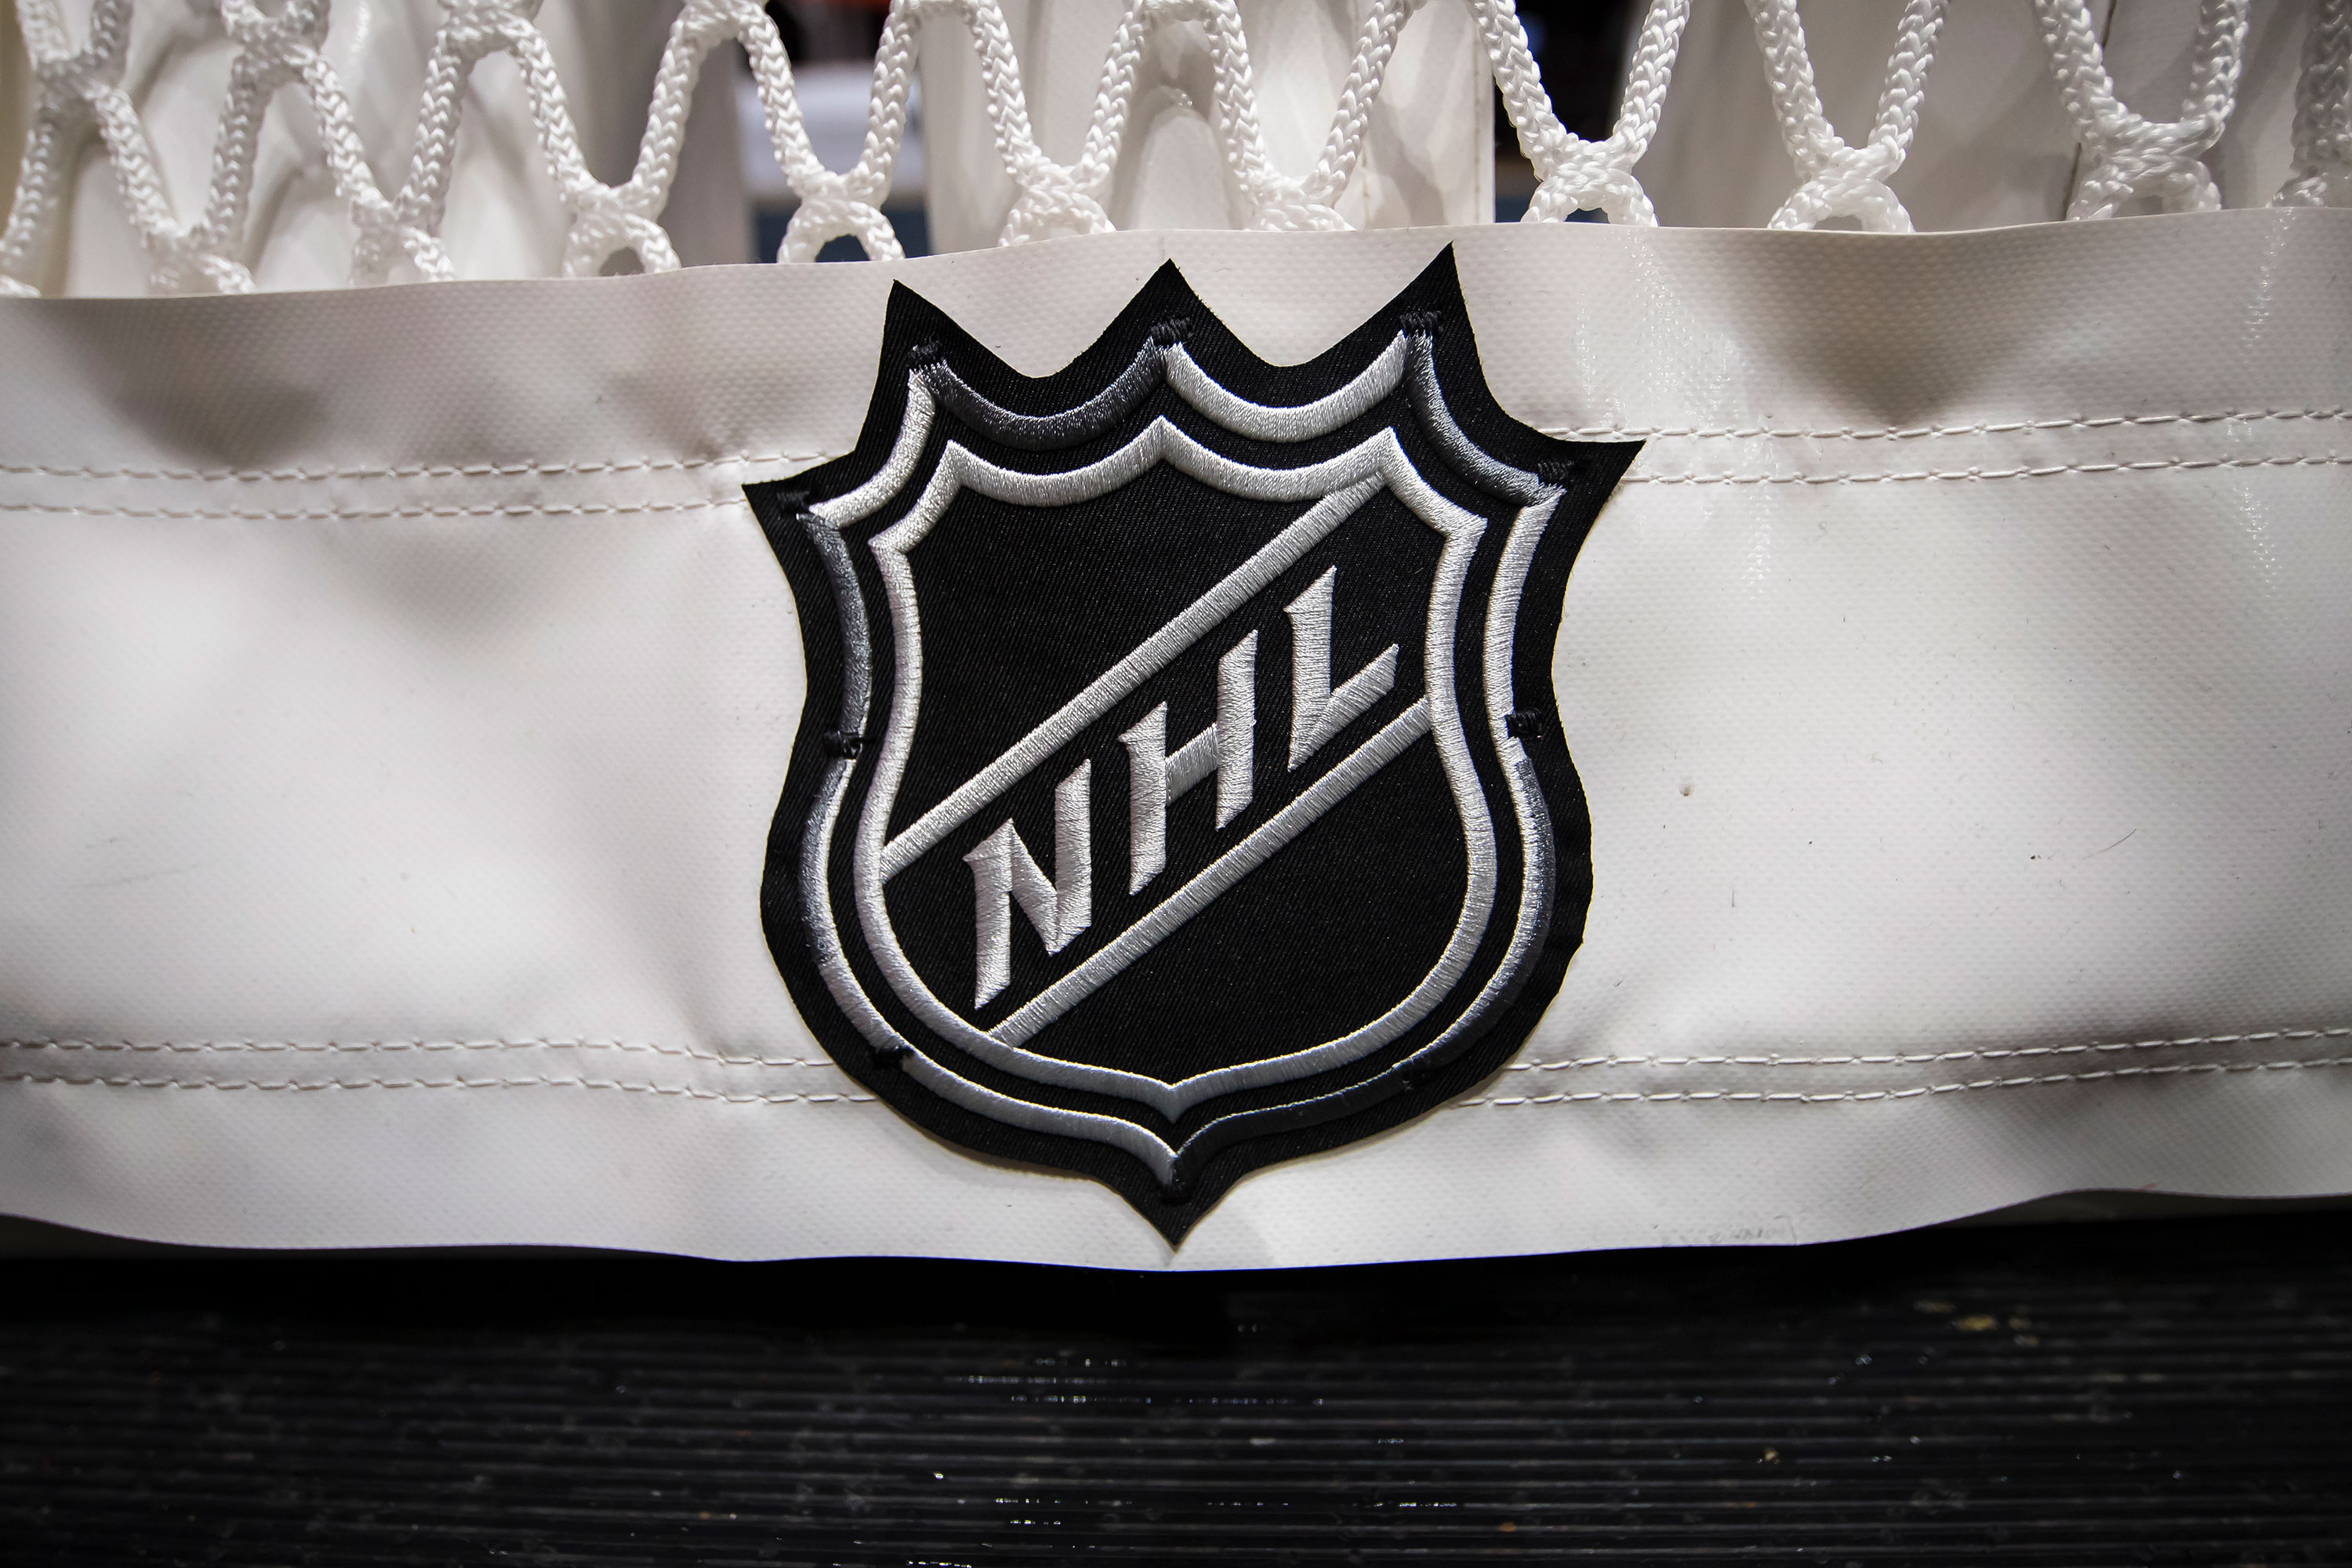 A detailed view of the NHL logo is seen on the back of the goal netting at Capital One Arena on October 16, 2019 in Washington, DC.